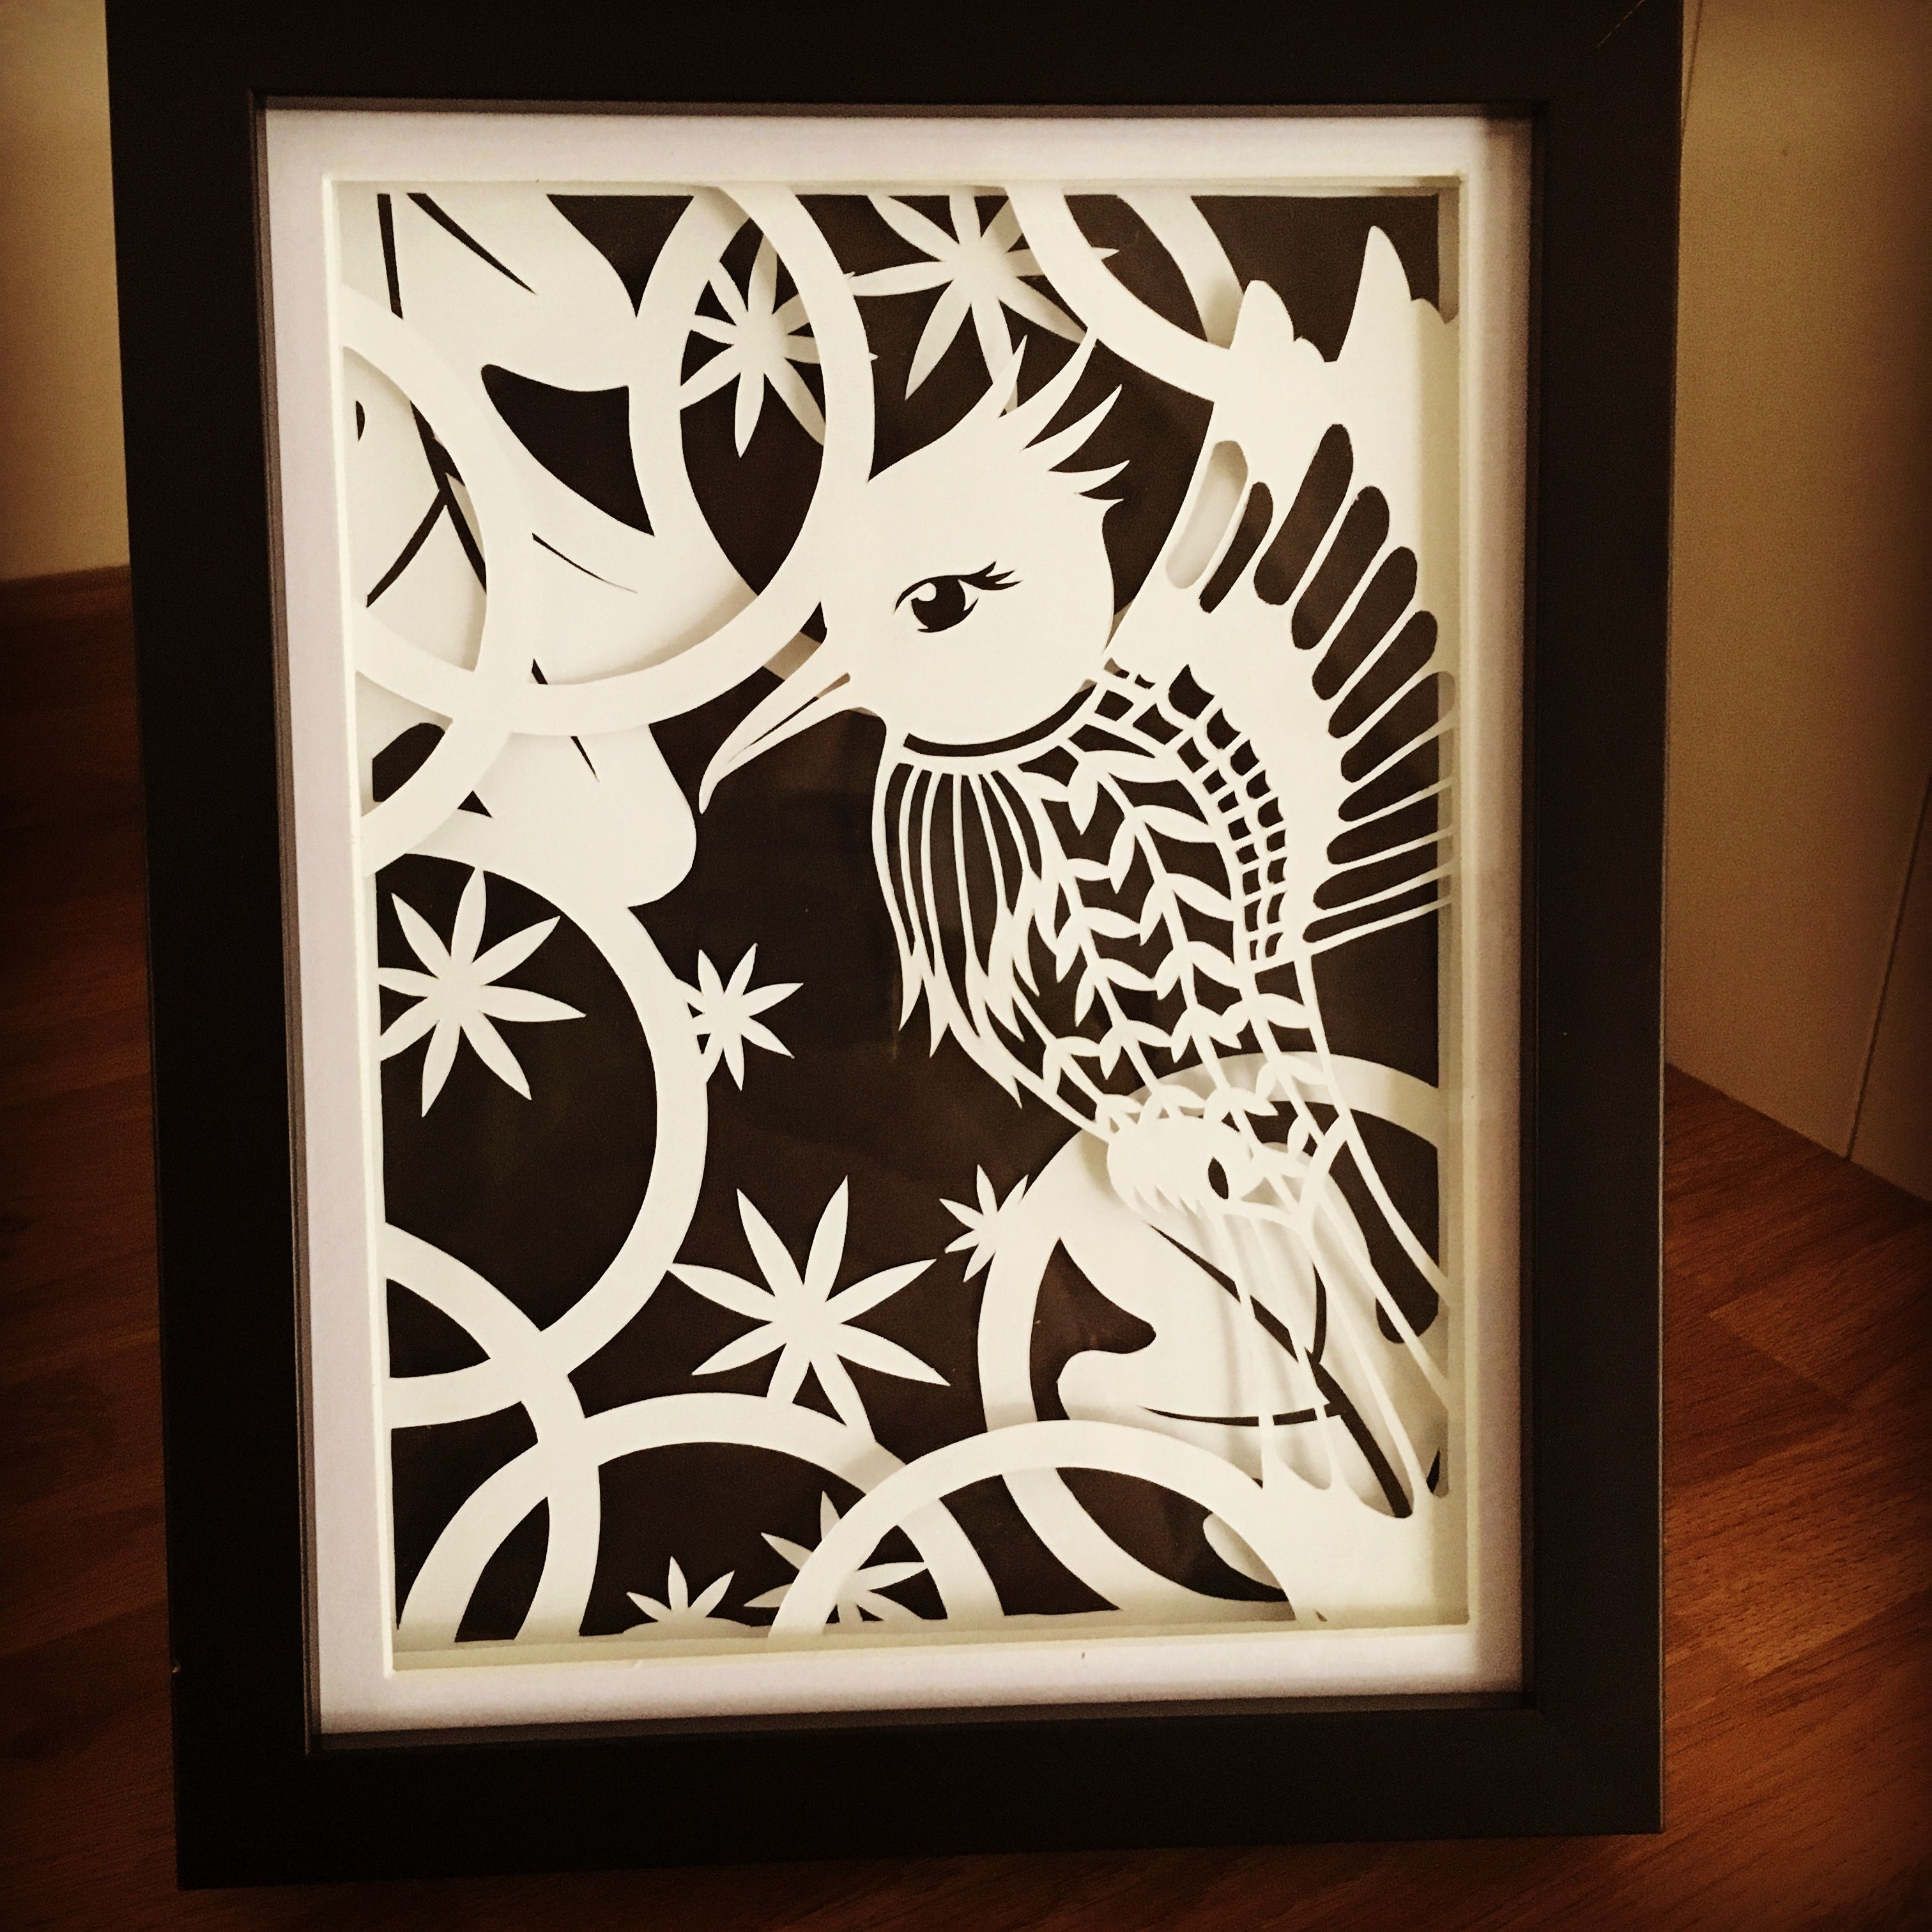 3D Paper Cut Art  A5  Framed #Crafts By Kate J